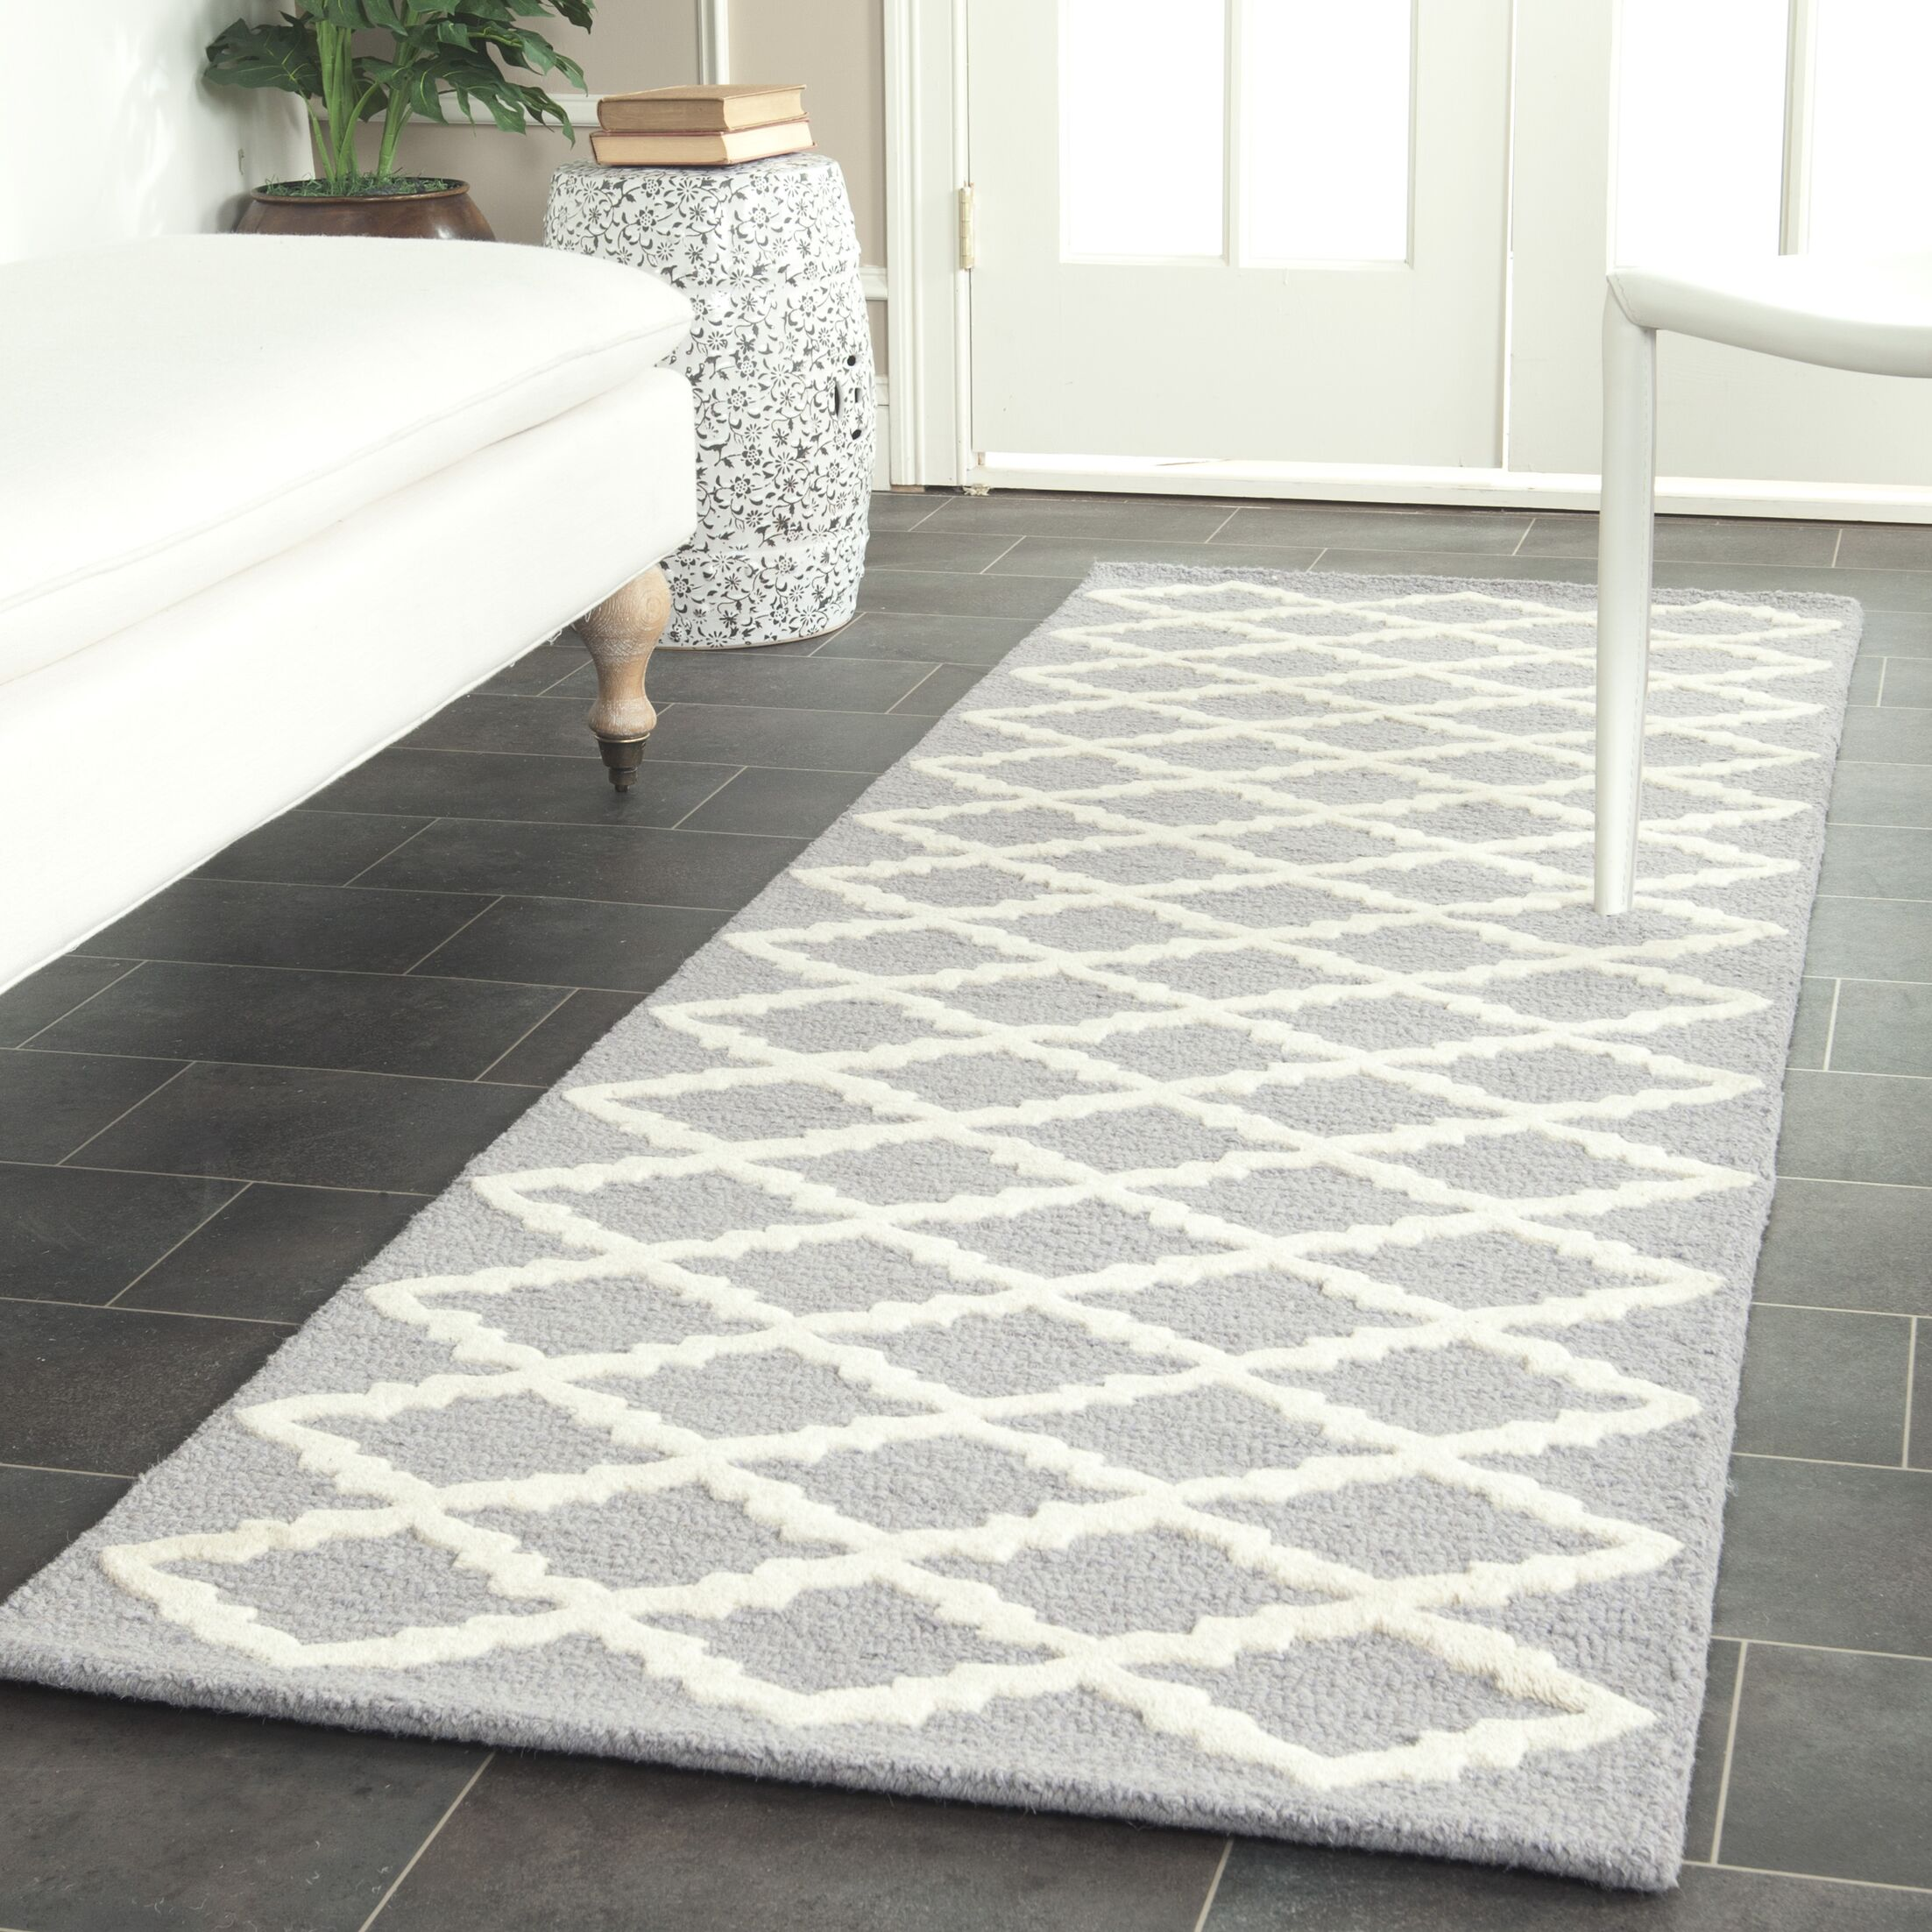 Charlenne Hand-Tufted Wool Silver/Ivory Area Rug Rug Size: Runner 2'6